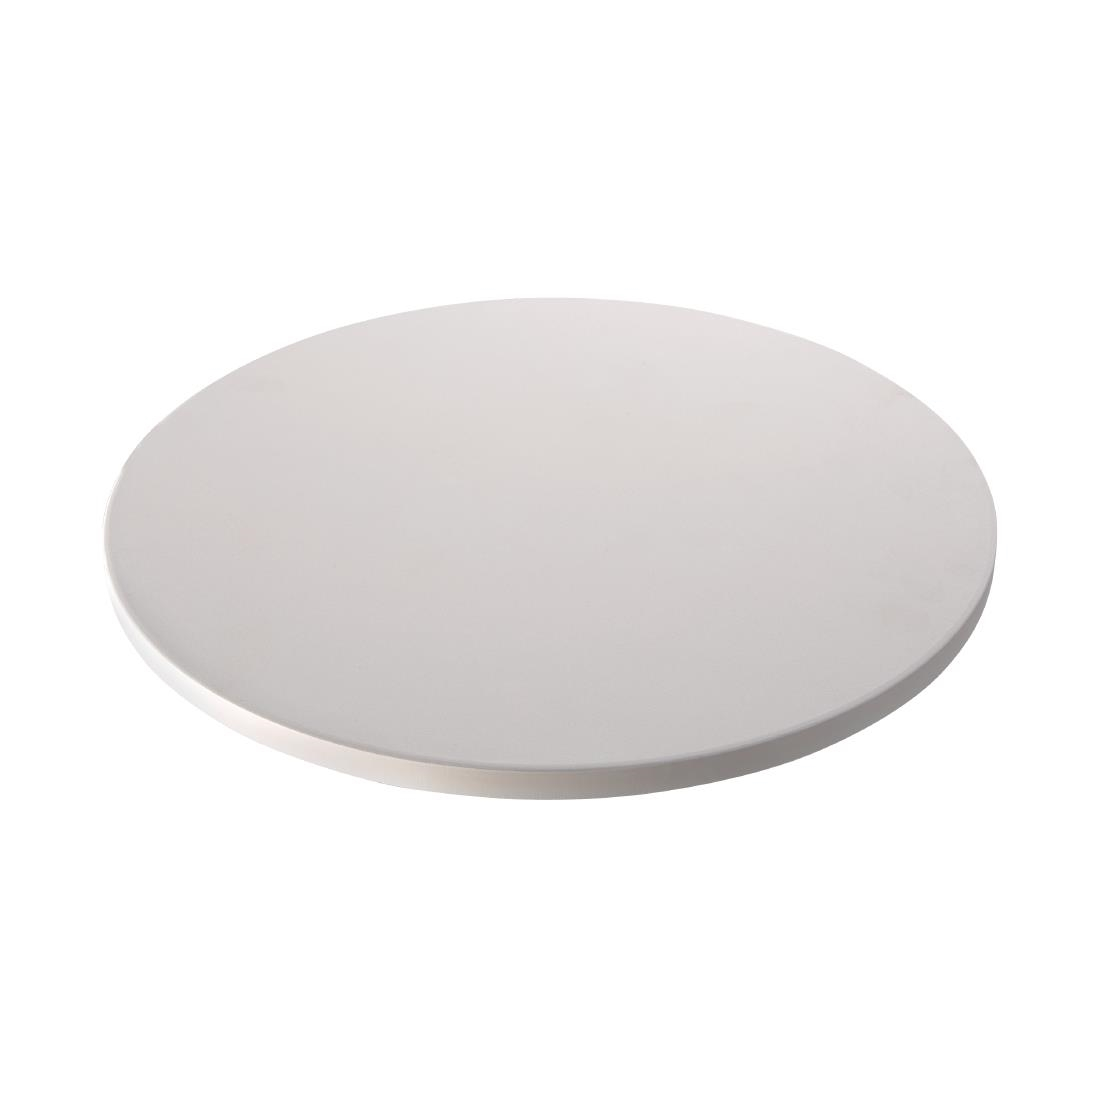 Image of Buffalo Ceramic Kamado BBQ Pizza Stone